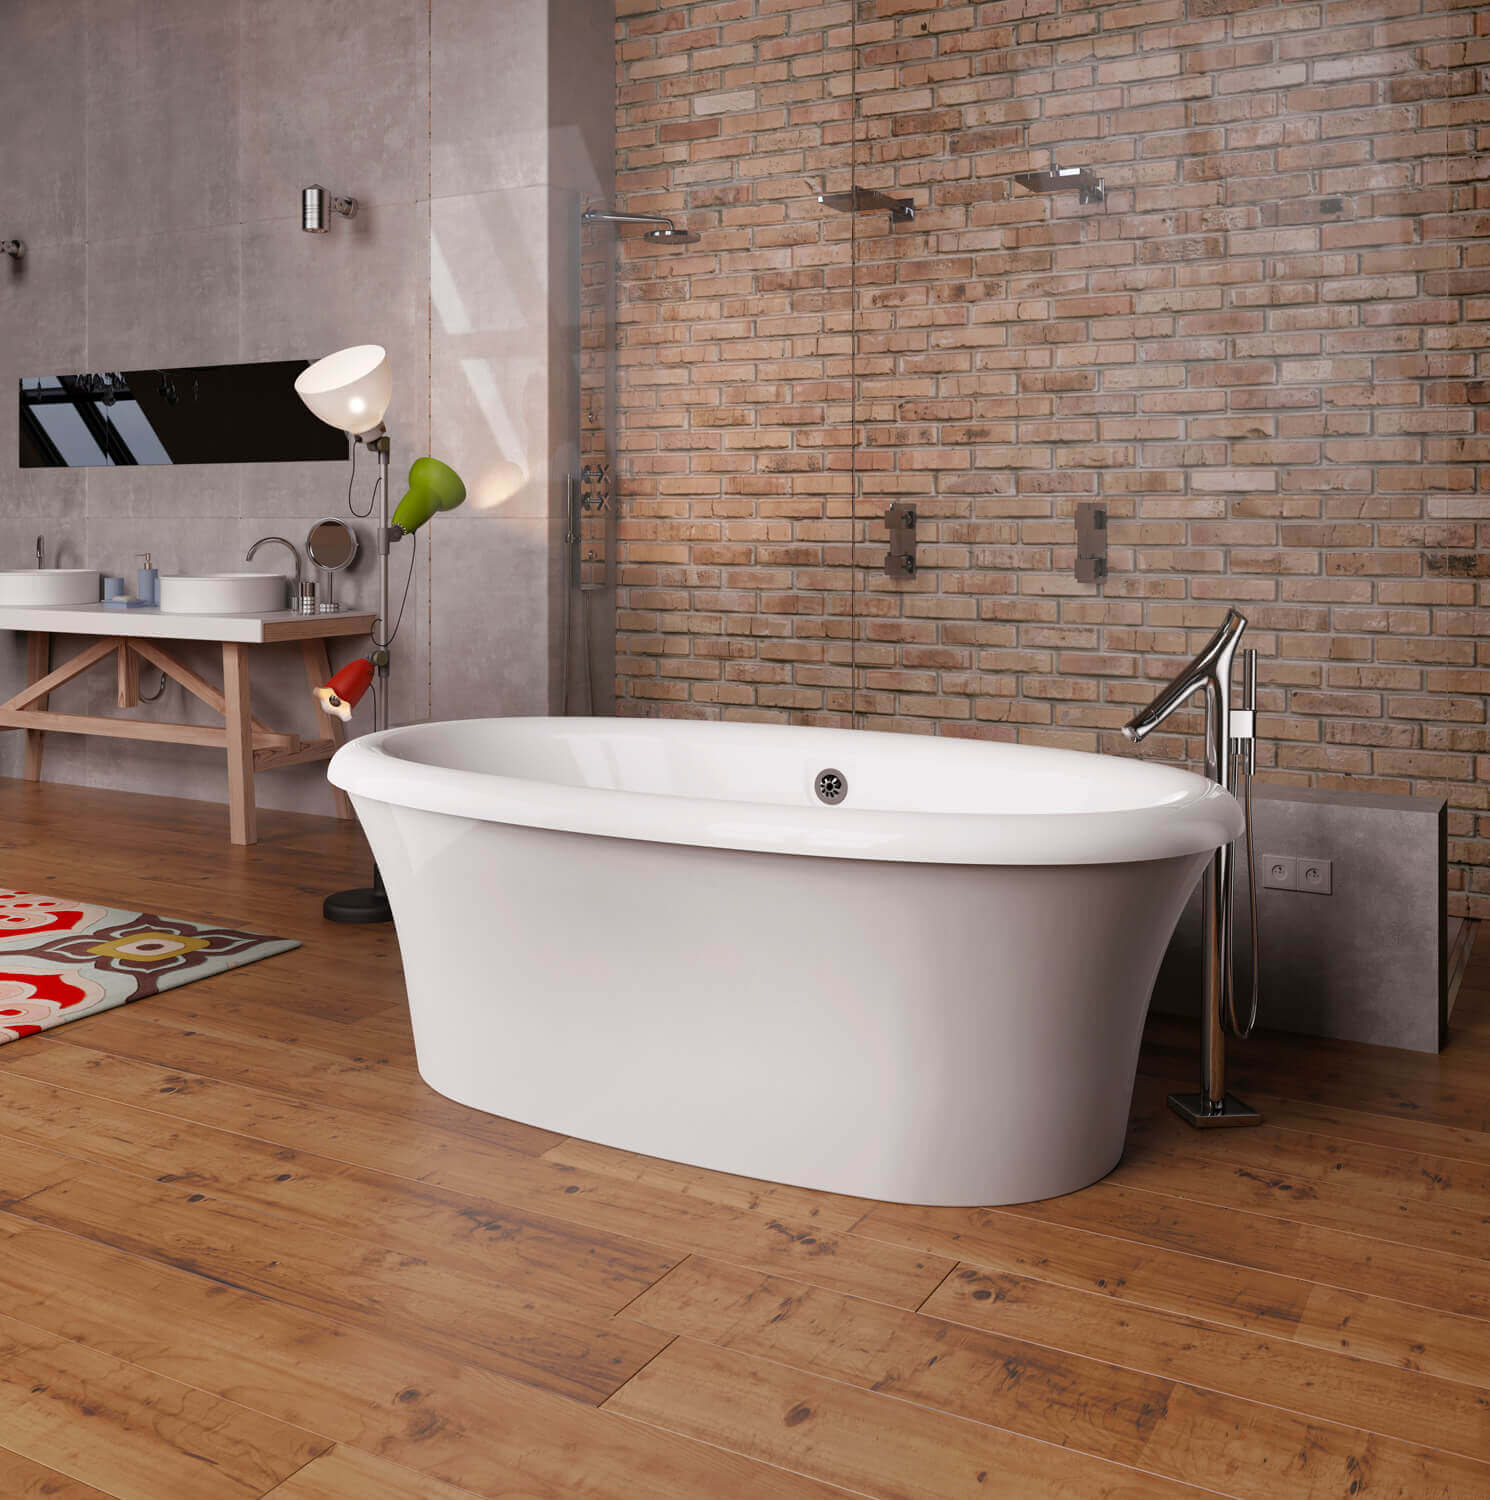 Bainultra Sanos 7240 two person large freestanding air jet bathtub for your modern bathroom